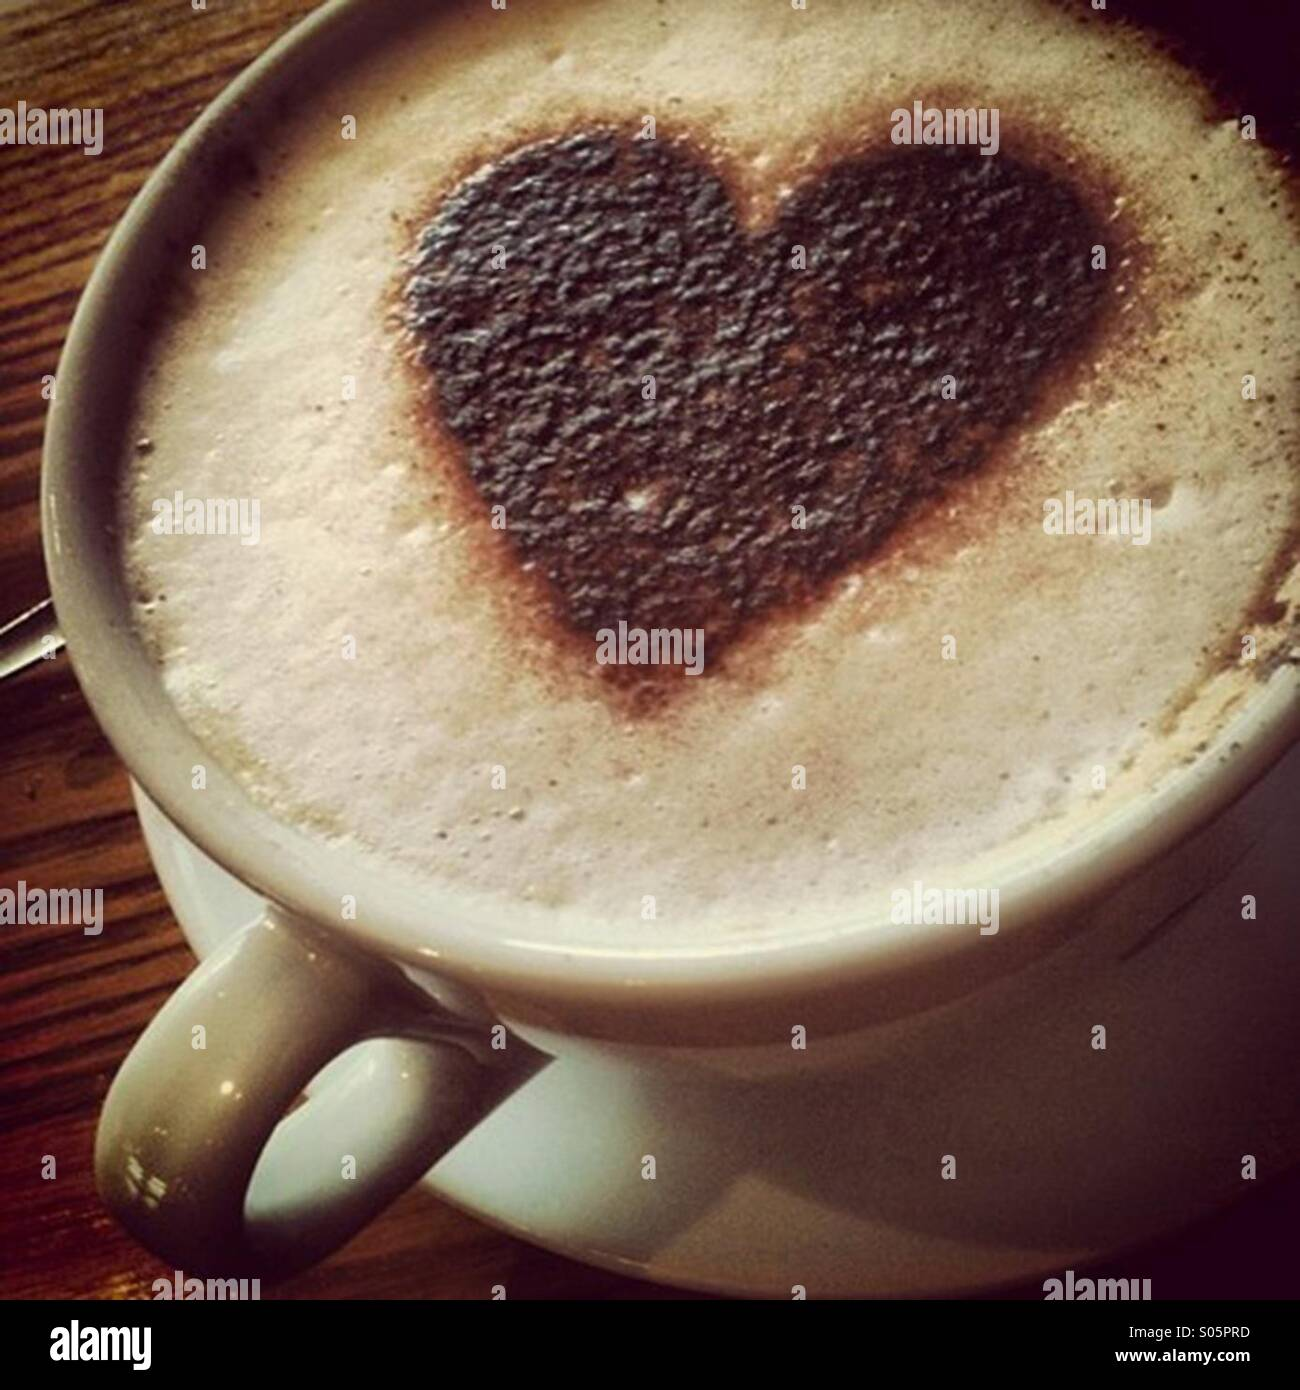 Cappuccino coffee drink in large mug and a heart shaped chocolate shape on the foam - Stock Image